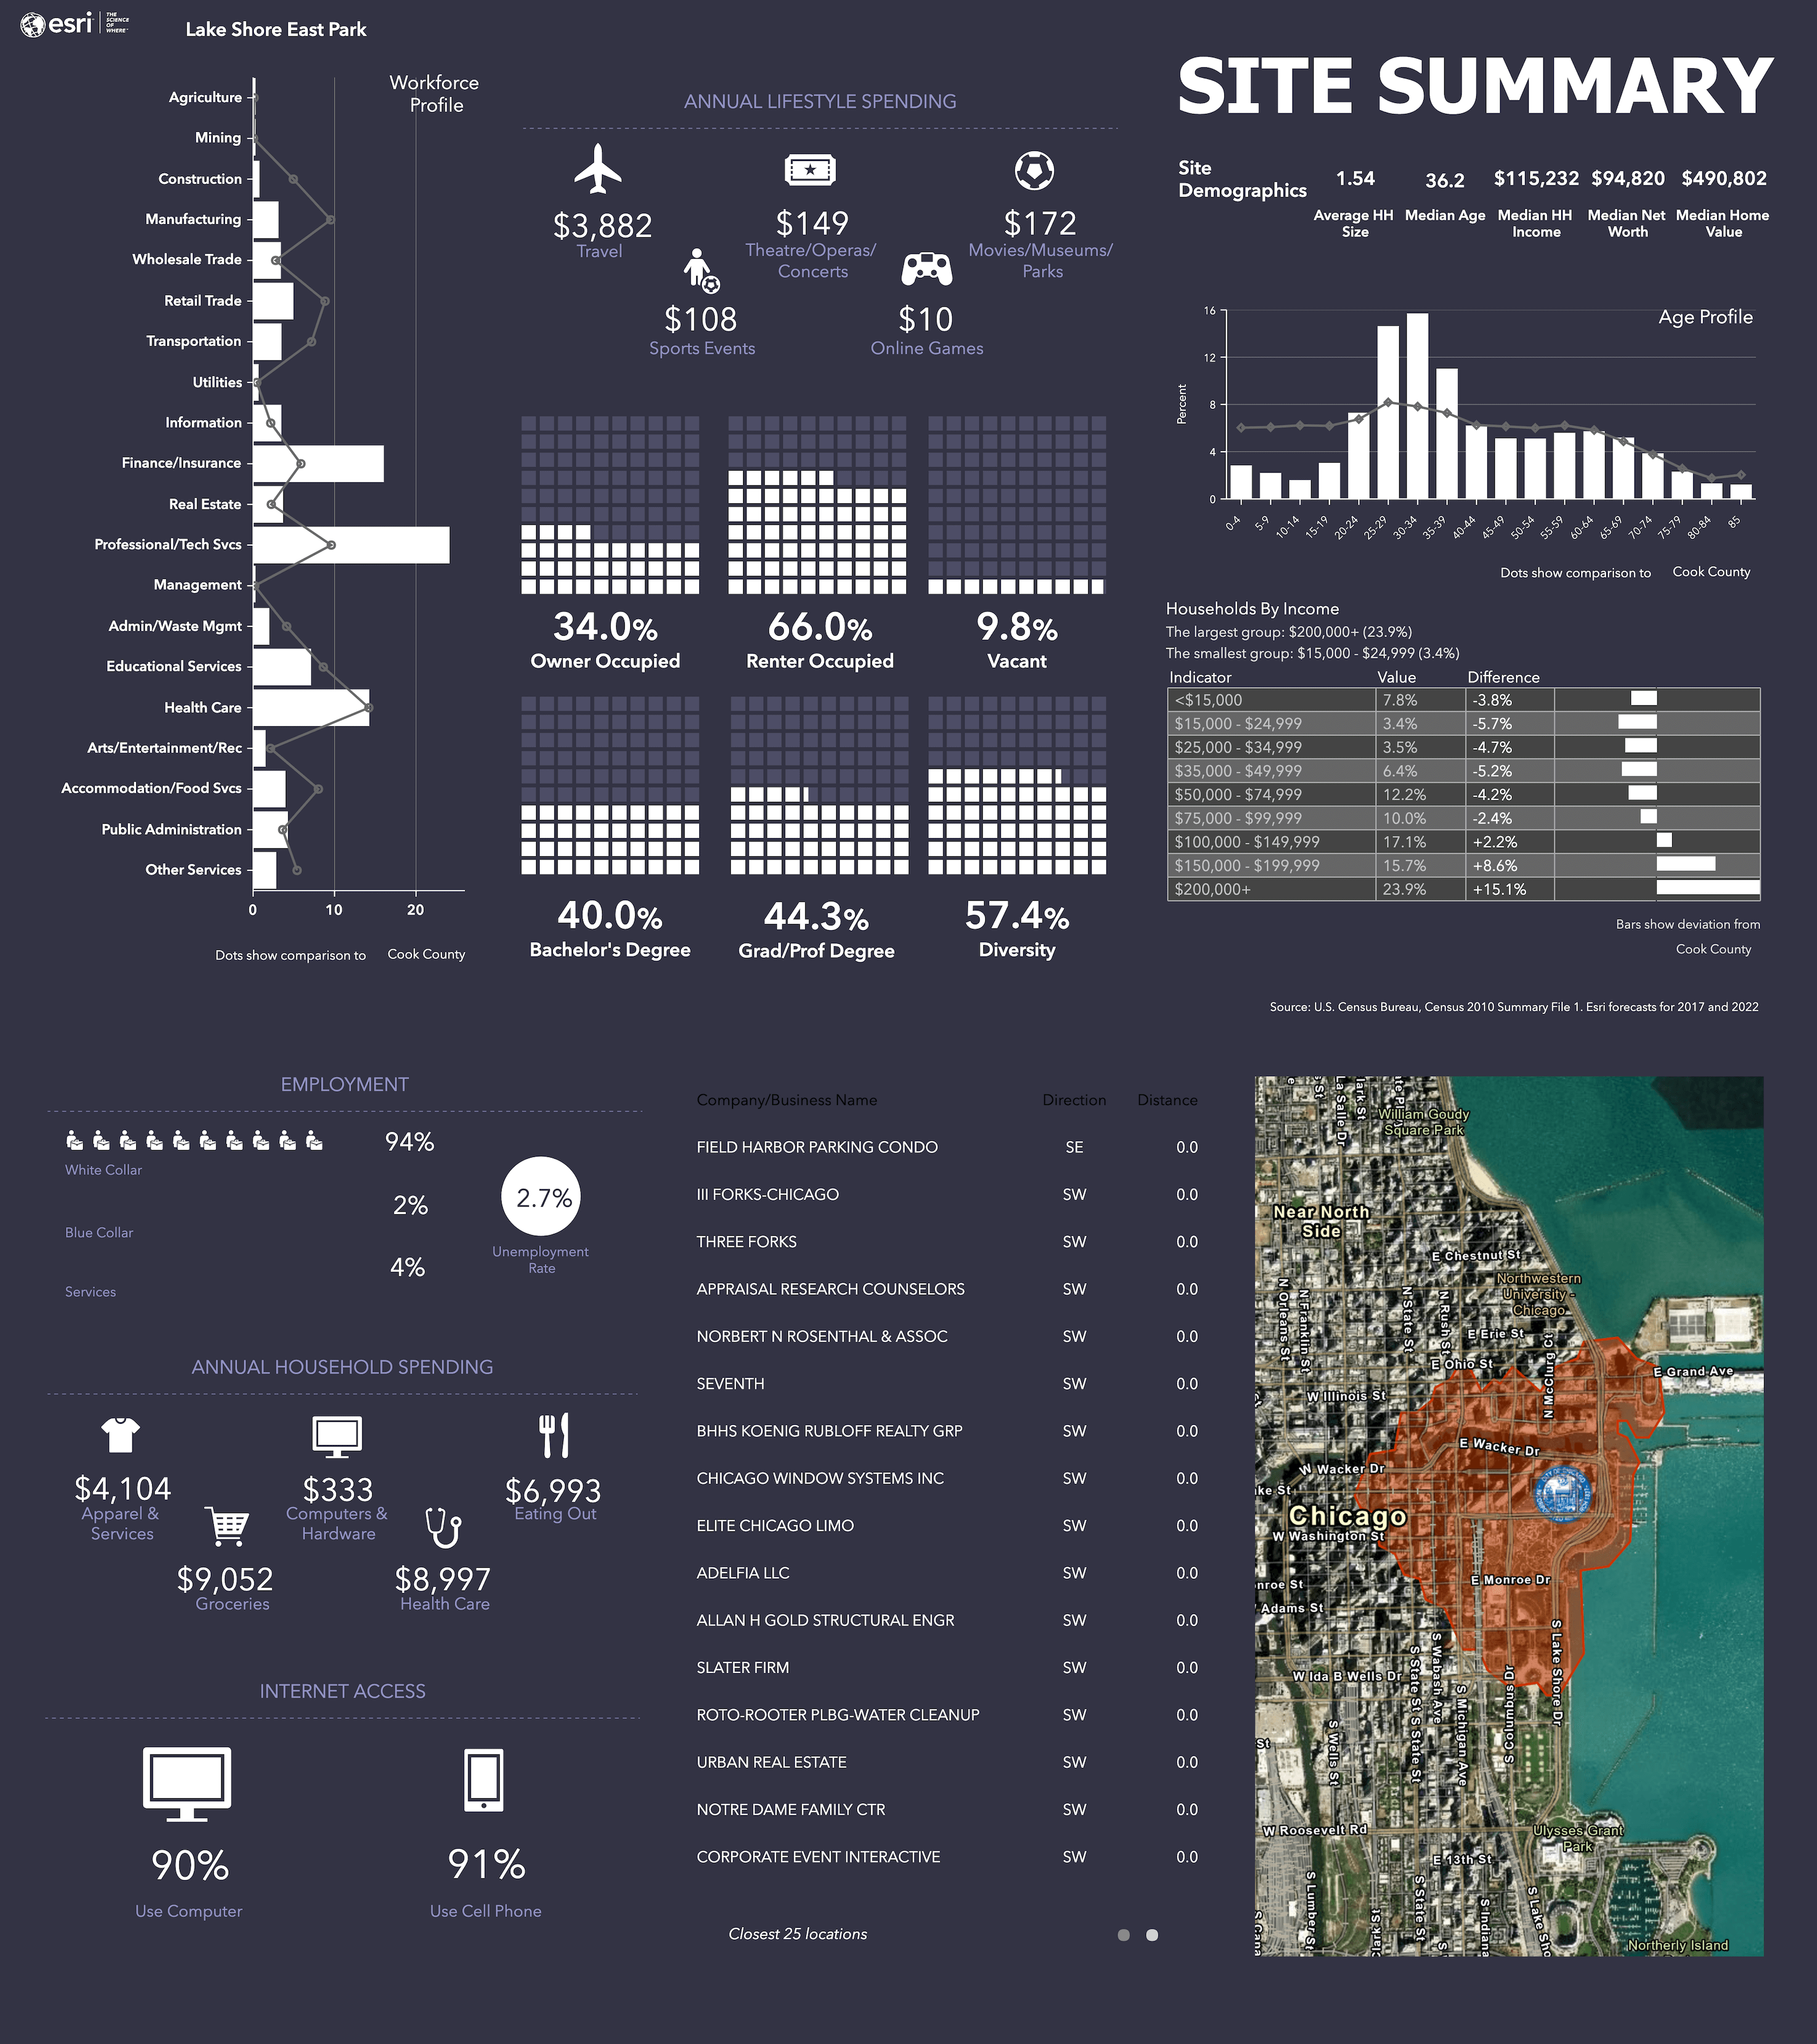 Infographic created using ArcGIS Business Analyst showing data for the downtown Chicago, IL area.